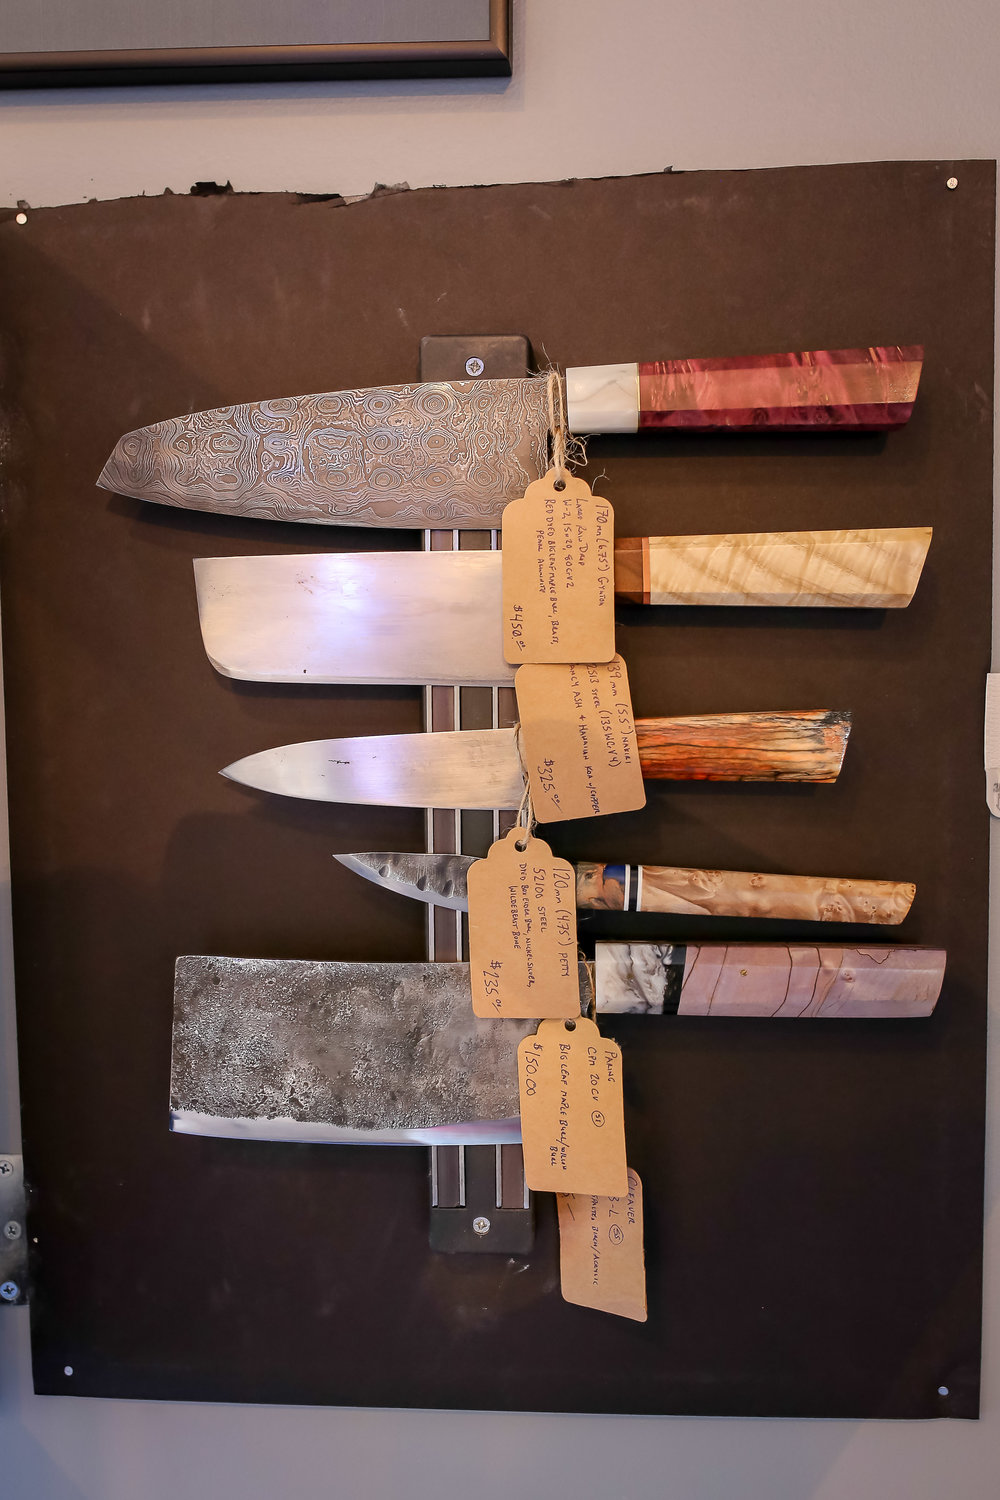 Rugged, handcrafted knives made in the Black Hills by a second generation Blacksmith, as beautiful and unique as the people on your gift list. Find yours at  Dakota Seafood .